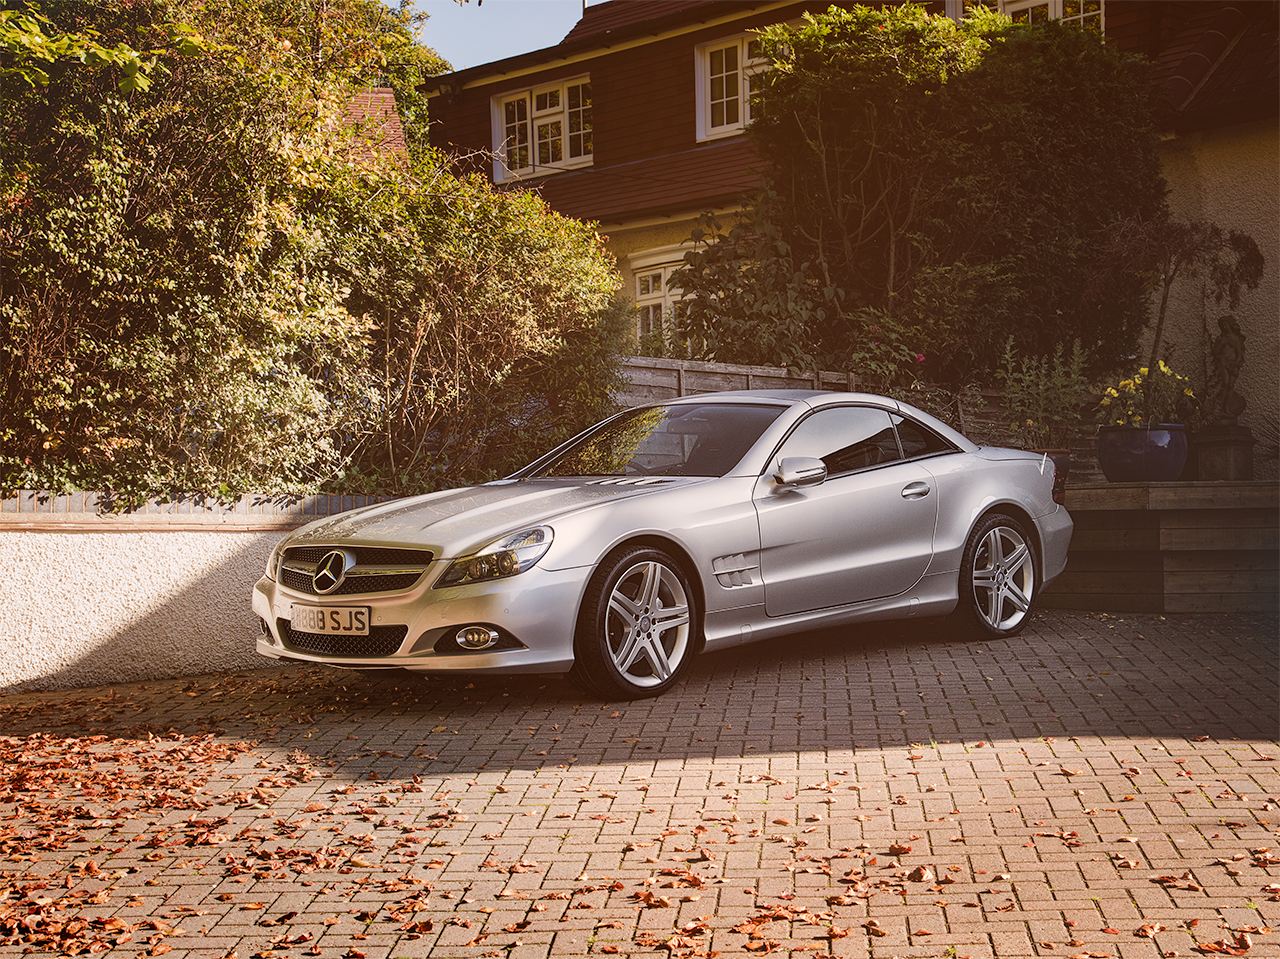 Mercedes SL550 by automotive photographer Kent Darren Woolway